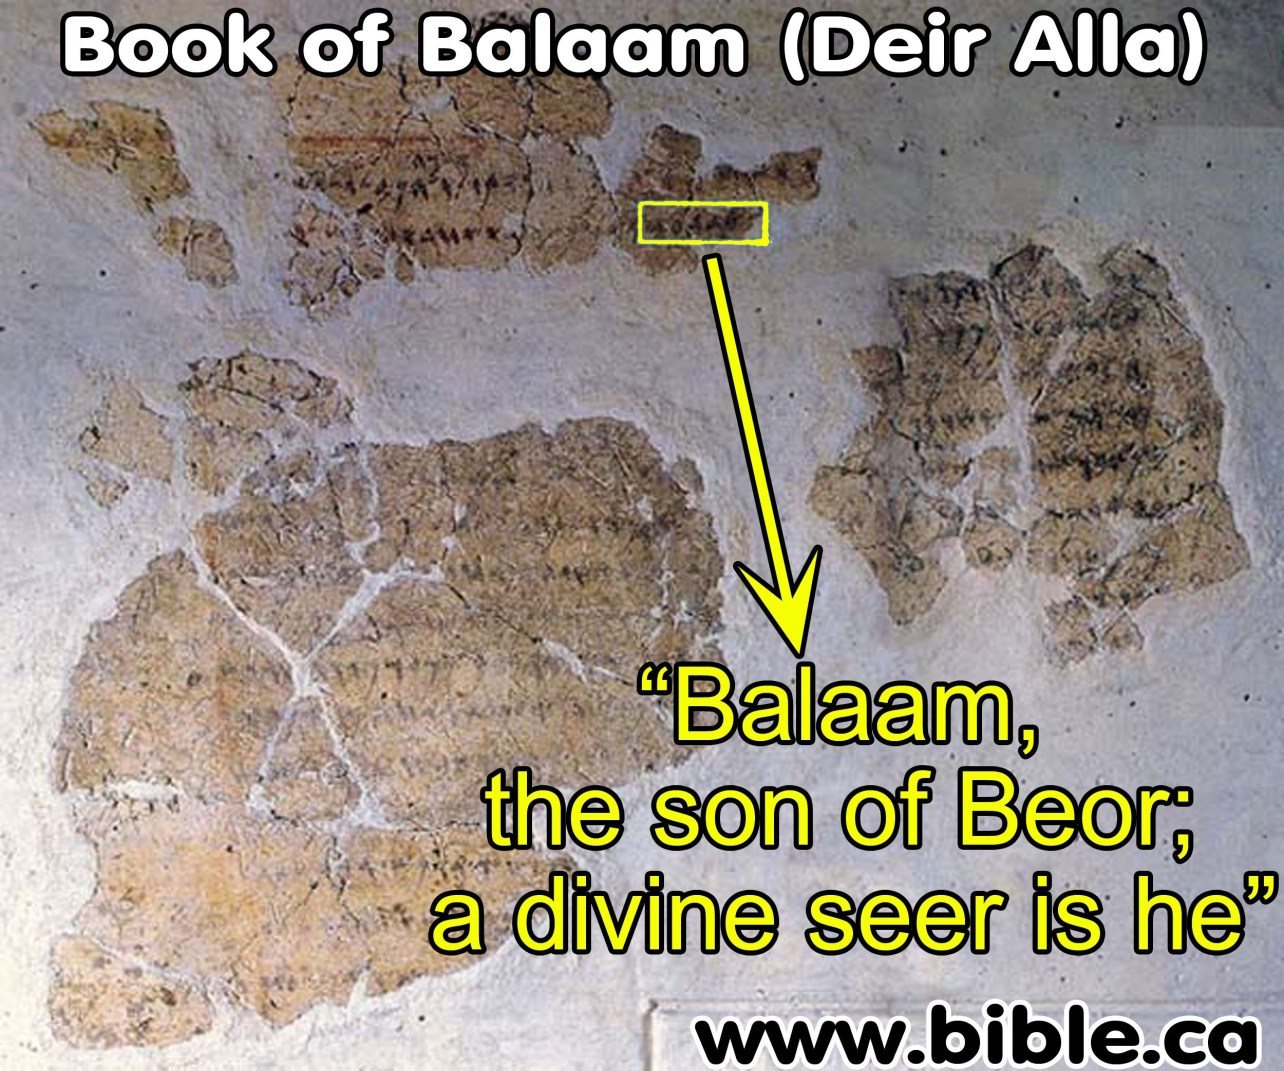 bible-archeology-balaam-son-of-beor-inscription-tell-deir-alla-succoth-pethor-book-of-balaam-museum-divine-seer-of-the-gods.jpg